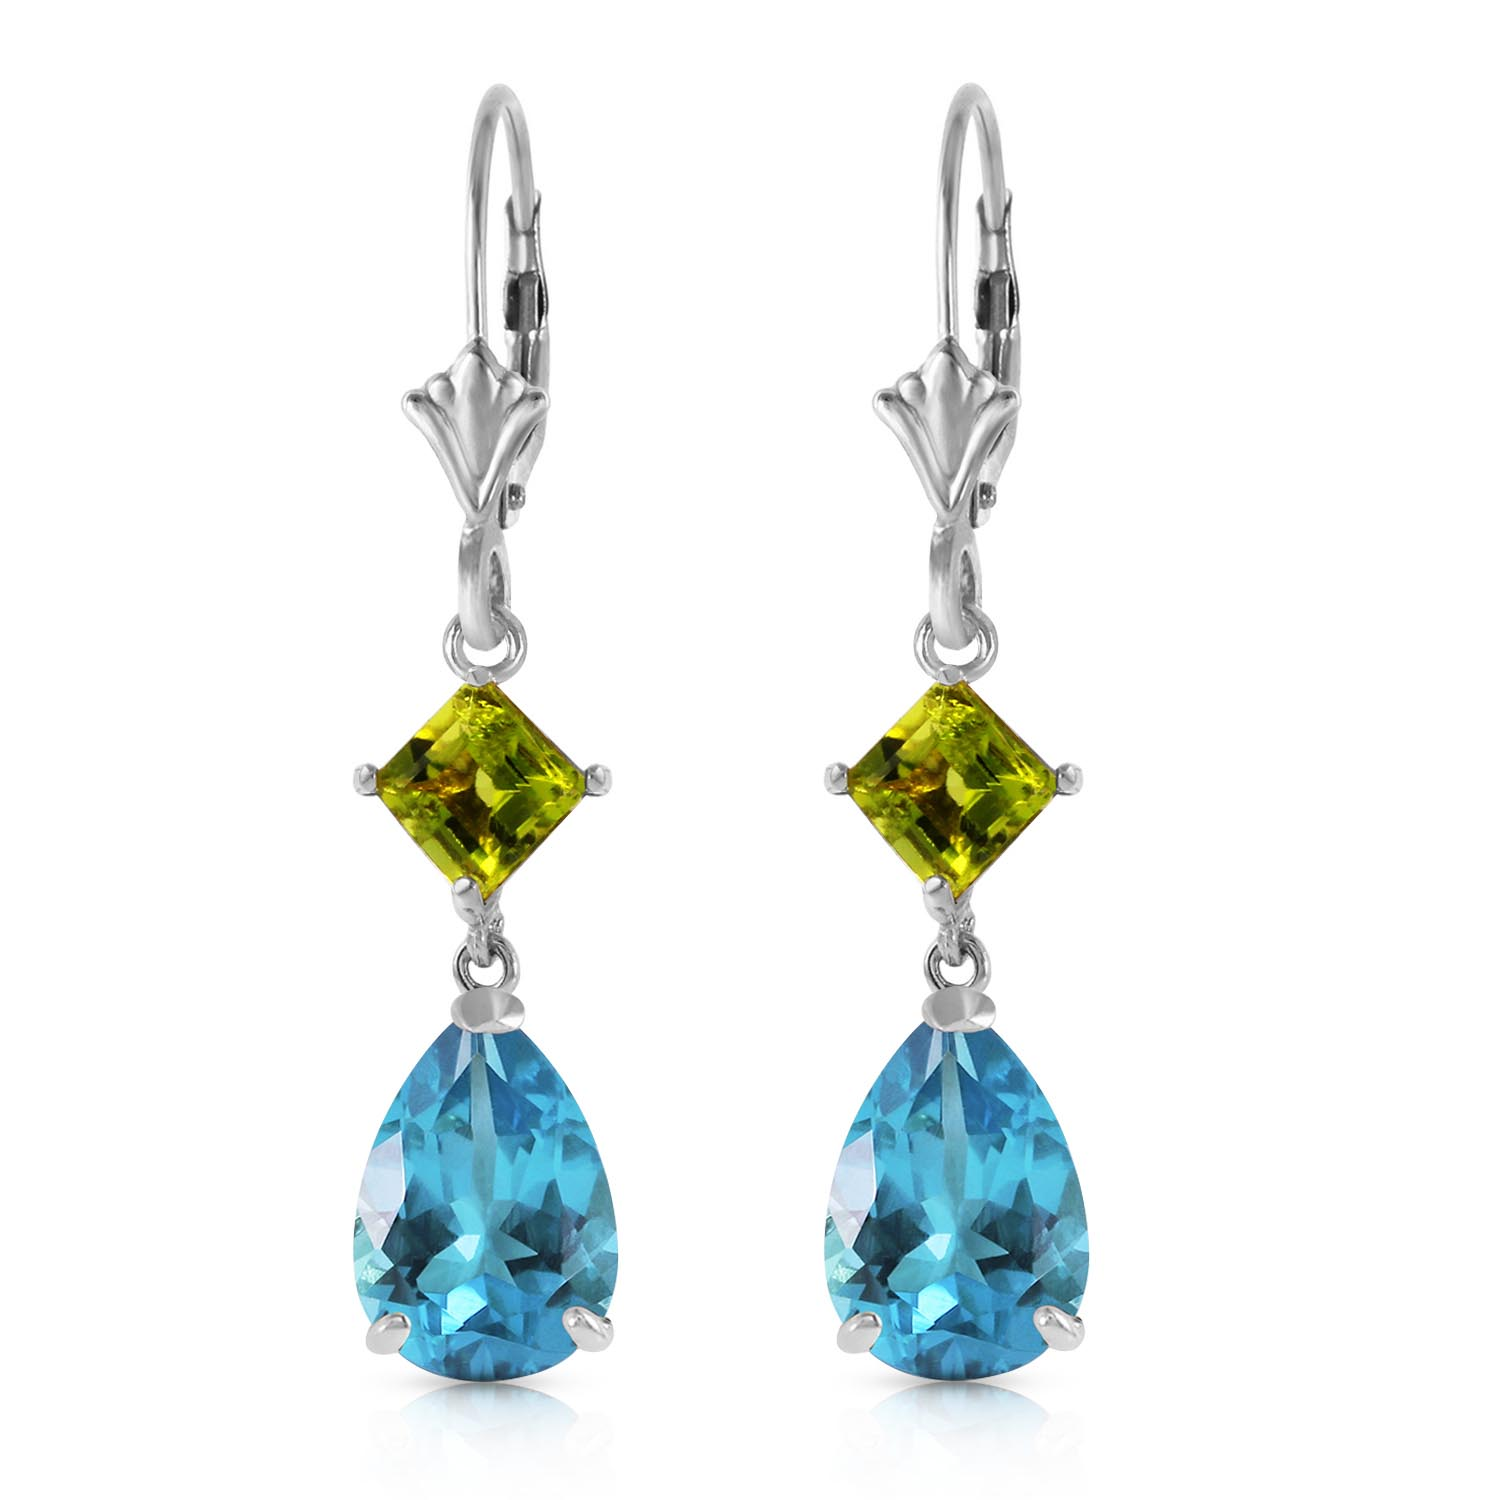 Blue Topaz and Peridot Droplet Earrings 4.5ctw in 9ct White Gold